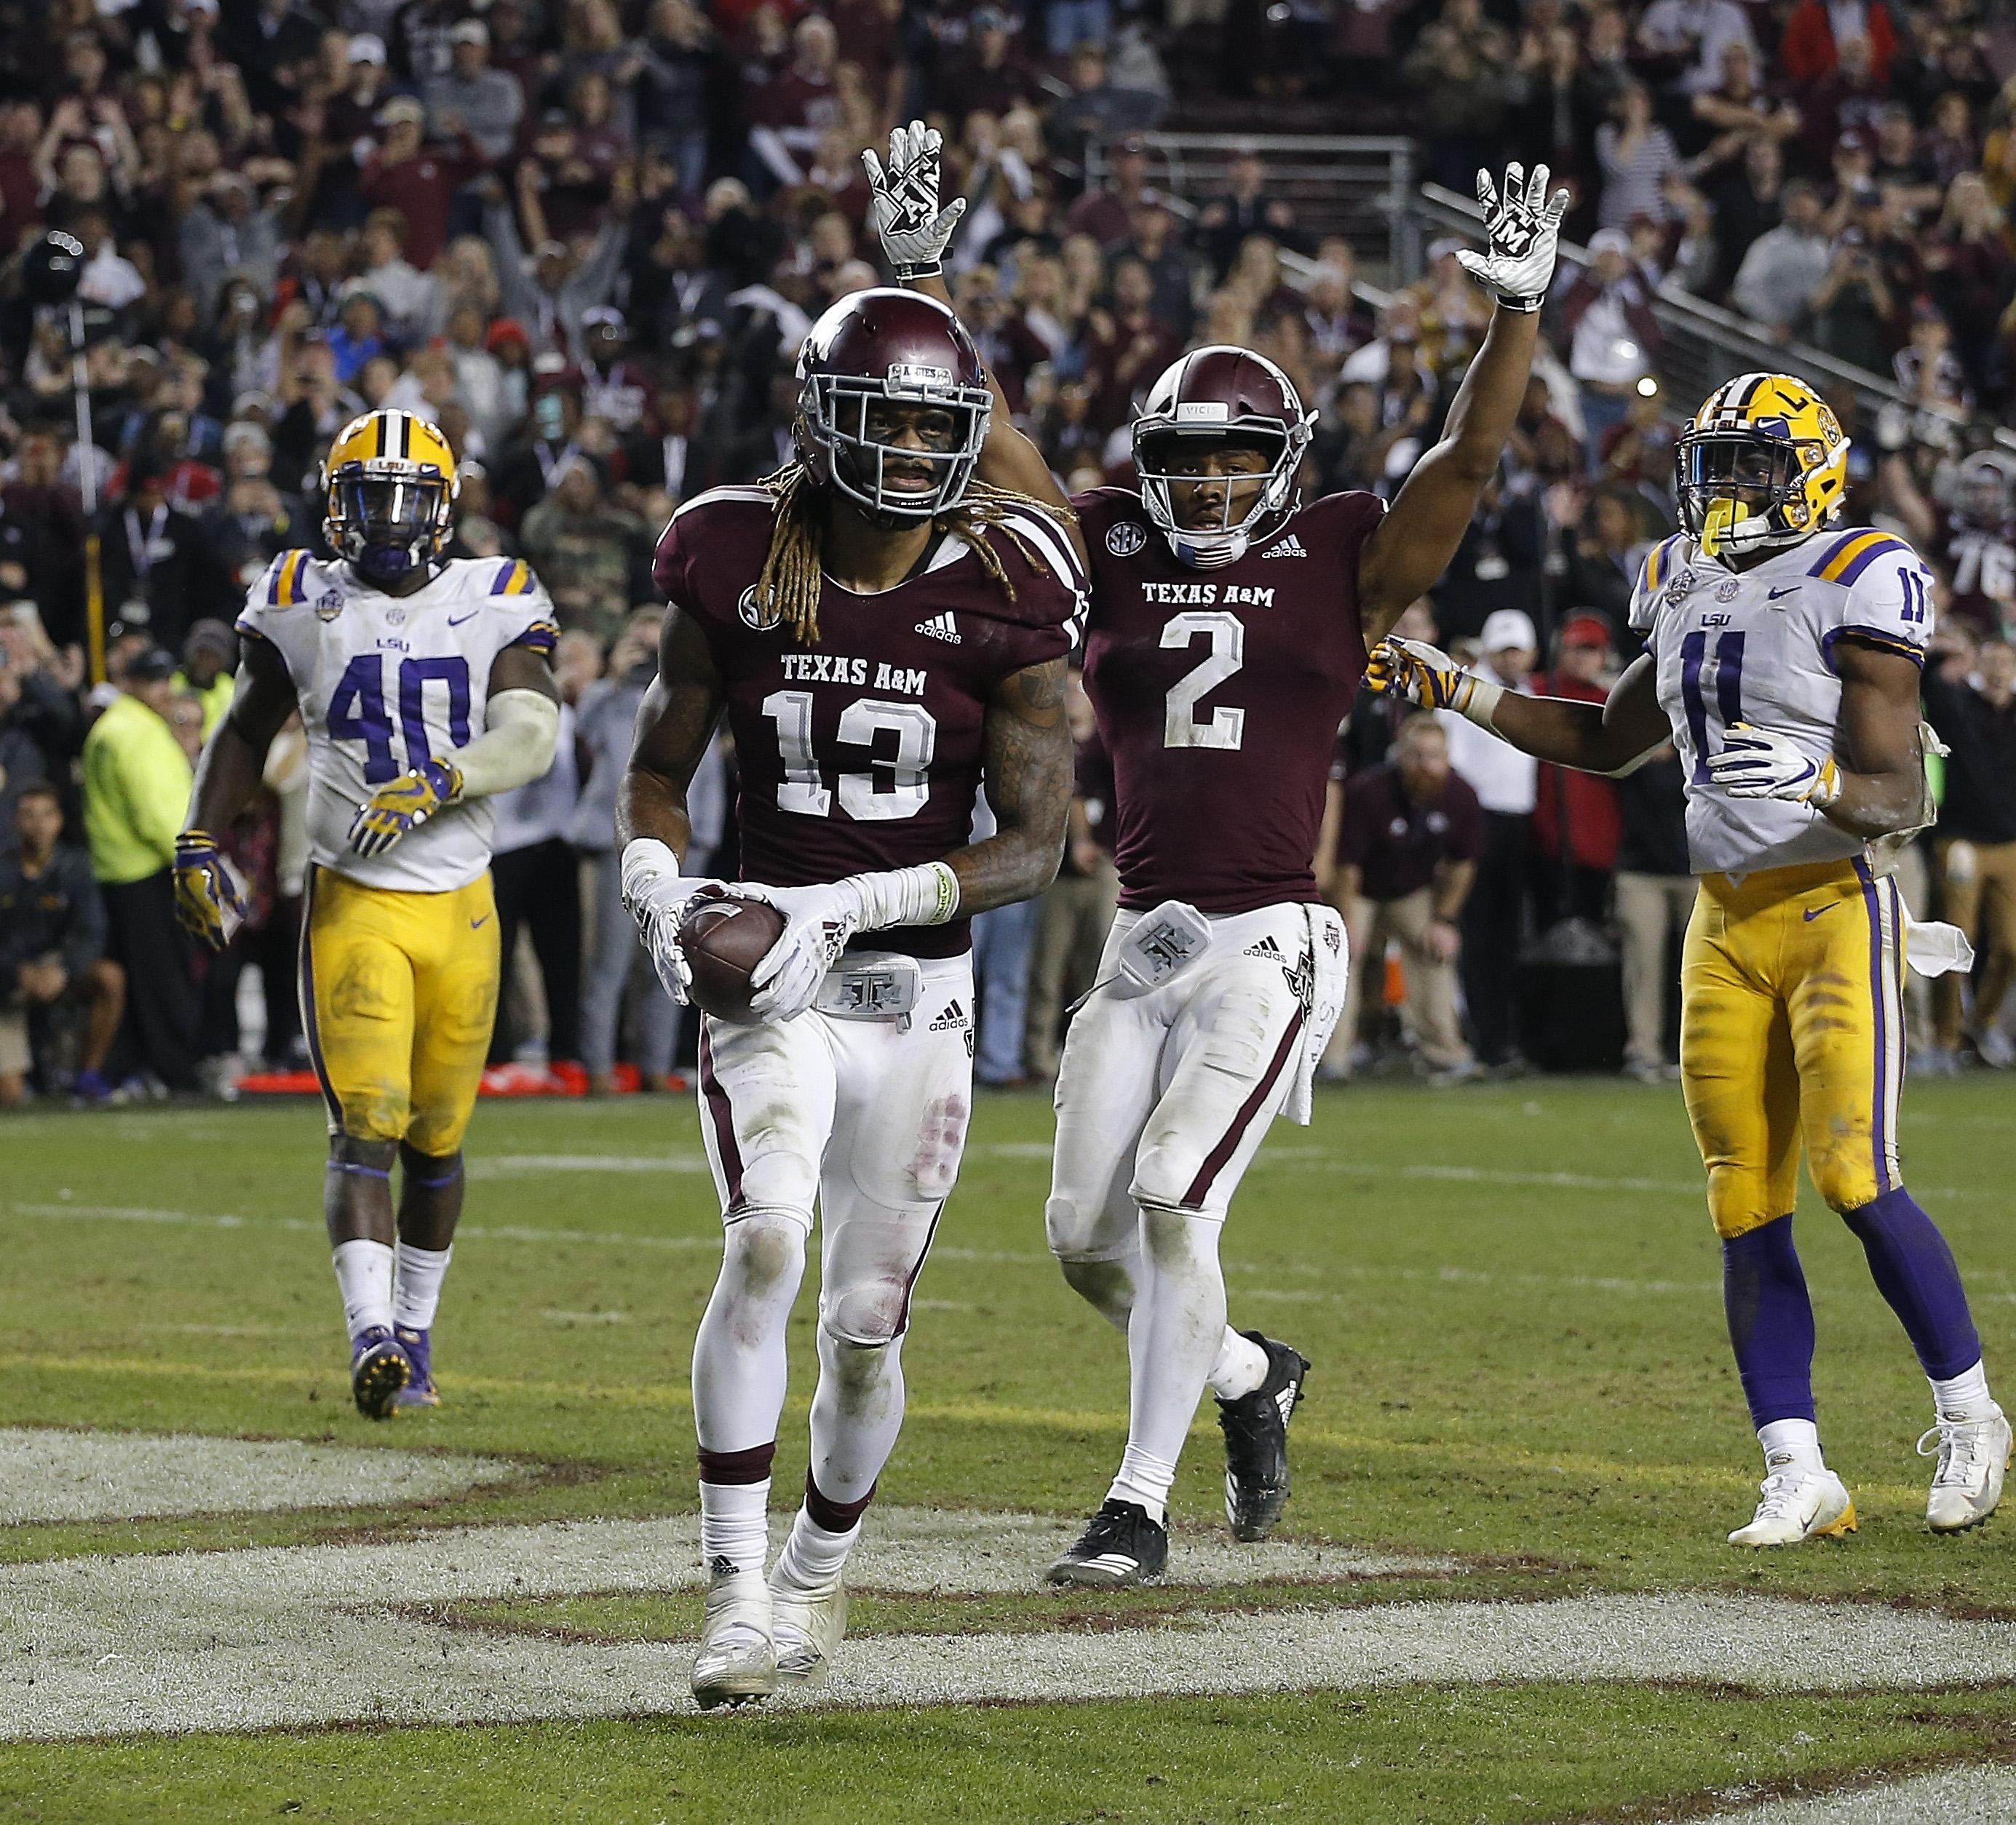 Kendrick Rogers #13 of the Texas A&M Aggies scores the winning two-point conversion.